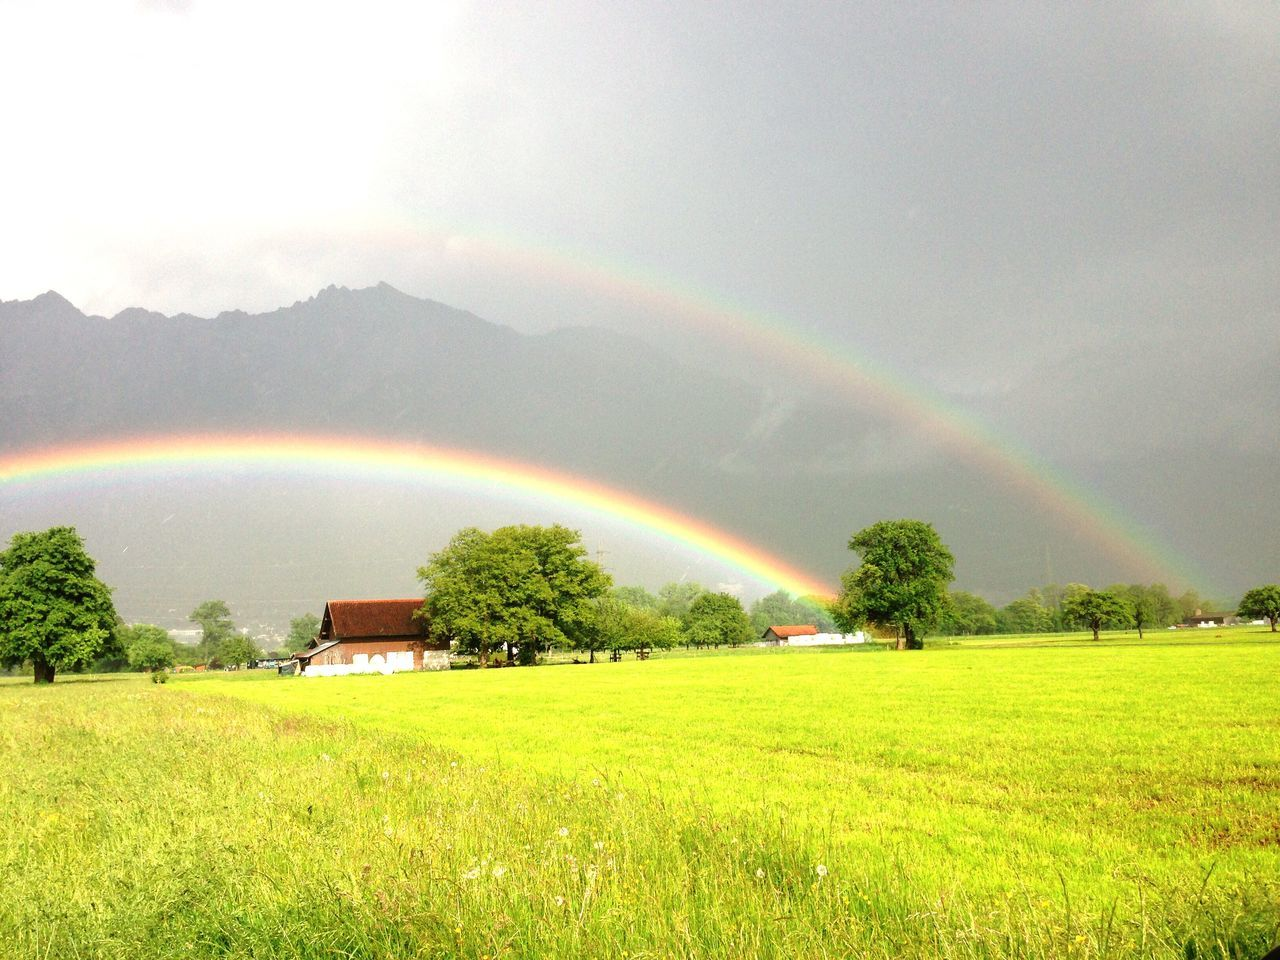 rainbow, double rainbow, idyllic, nature, scenics, field, beauty in nature, tranquil scene, tranquility, grass, no people, landscape, day, mountain, green color, agriculture, tree, growth, outdoors, rural scene, sky, spectrum, freshness